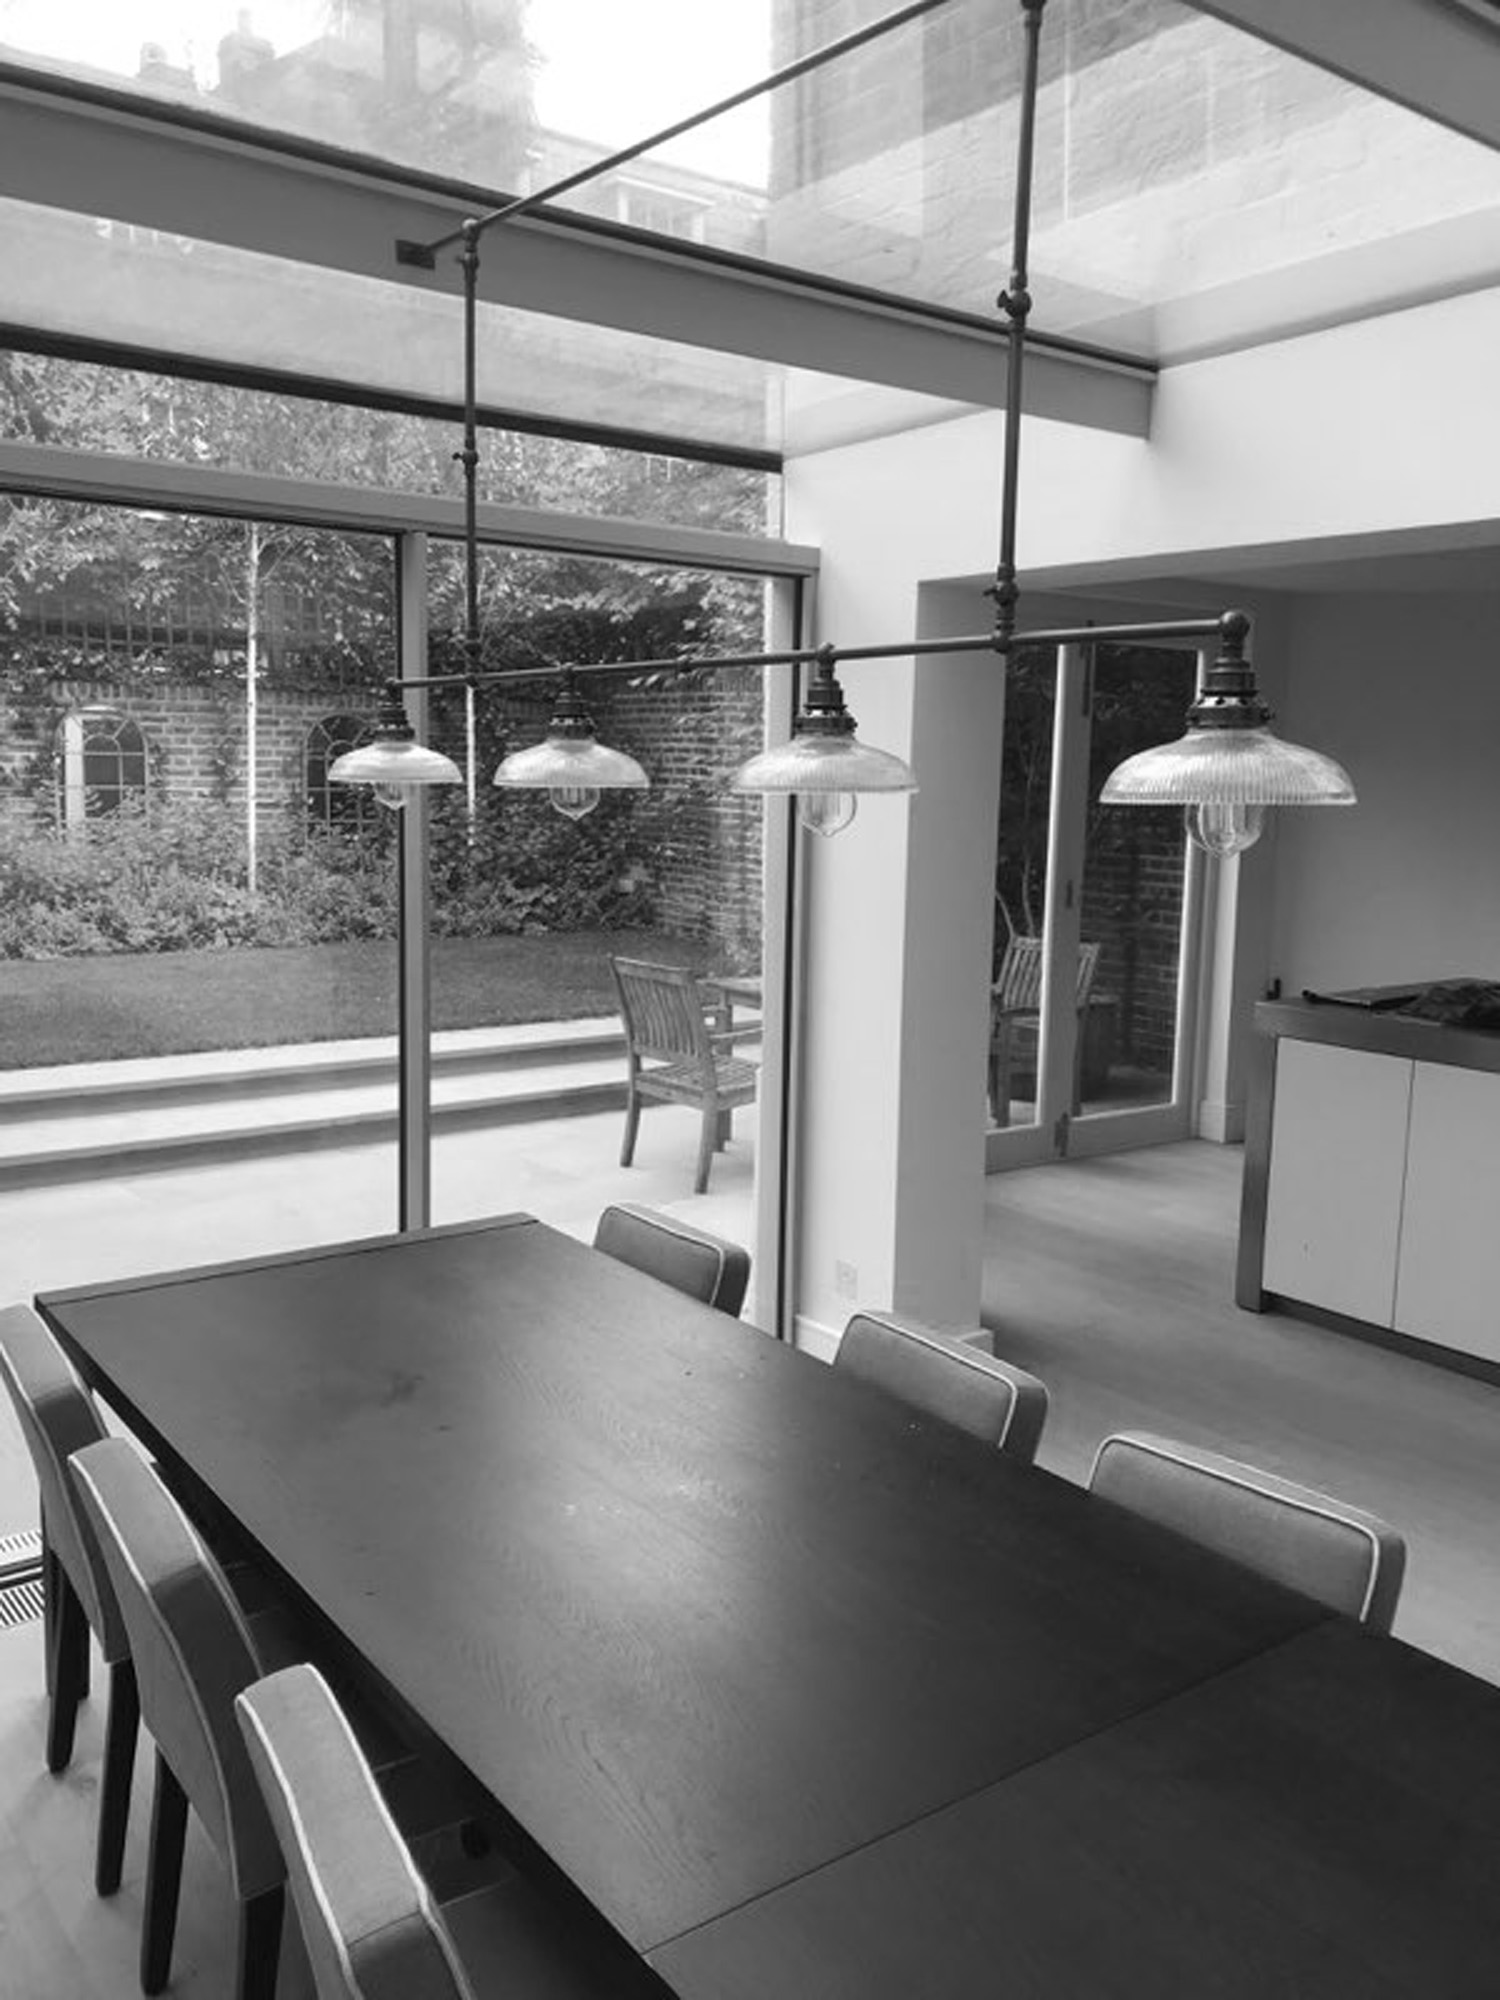 July 2018  Our bespoke adjustable dining room pendant light completes the scene in our newly refurbished villa in Holland Park. Great work by the David Turner Workshop.   Link to project